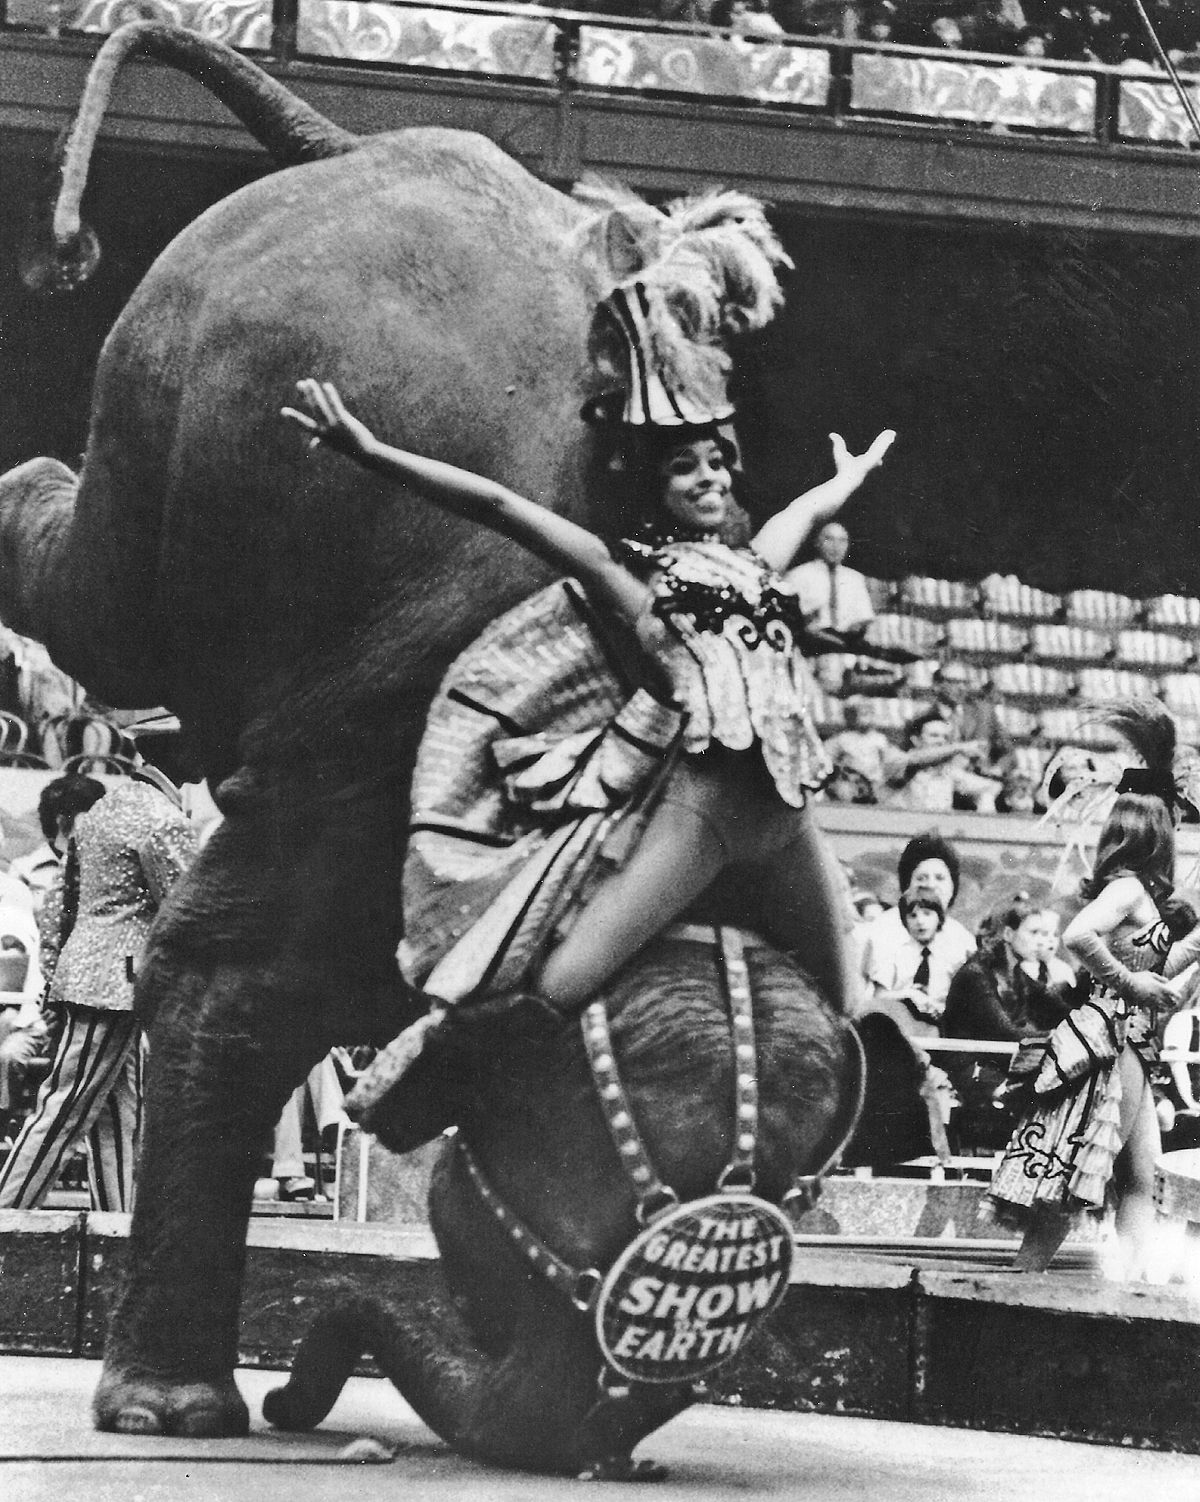 """Alice Clark Brown said riding on the elephants was """"kind of scary for me because I was afraid of heights."""""""